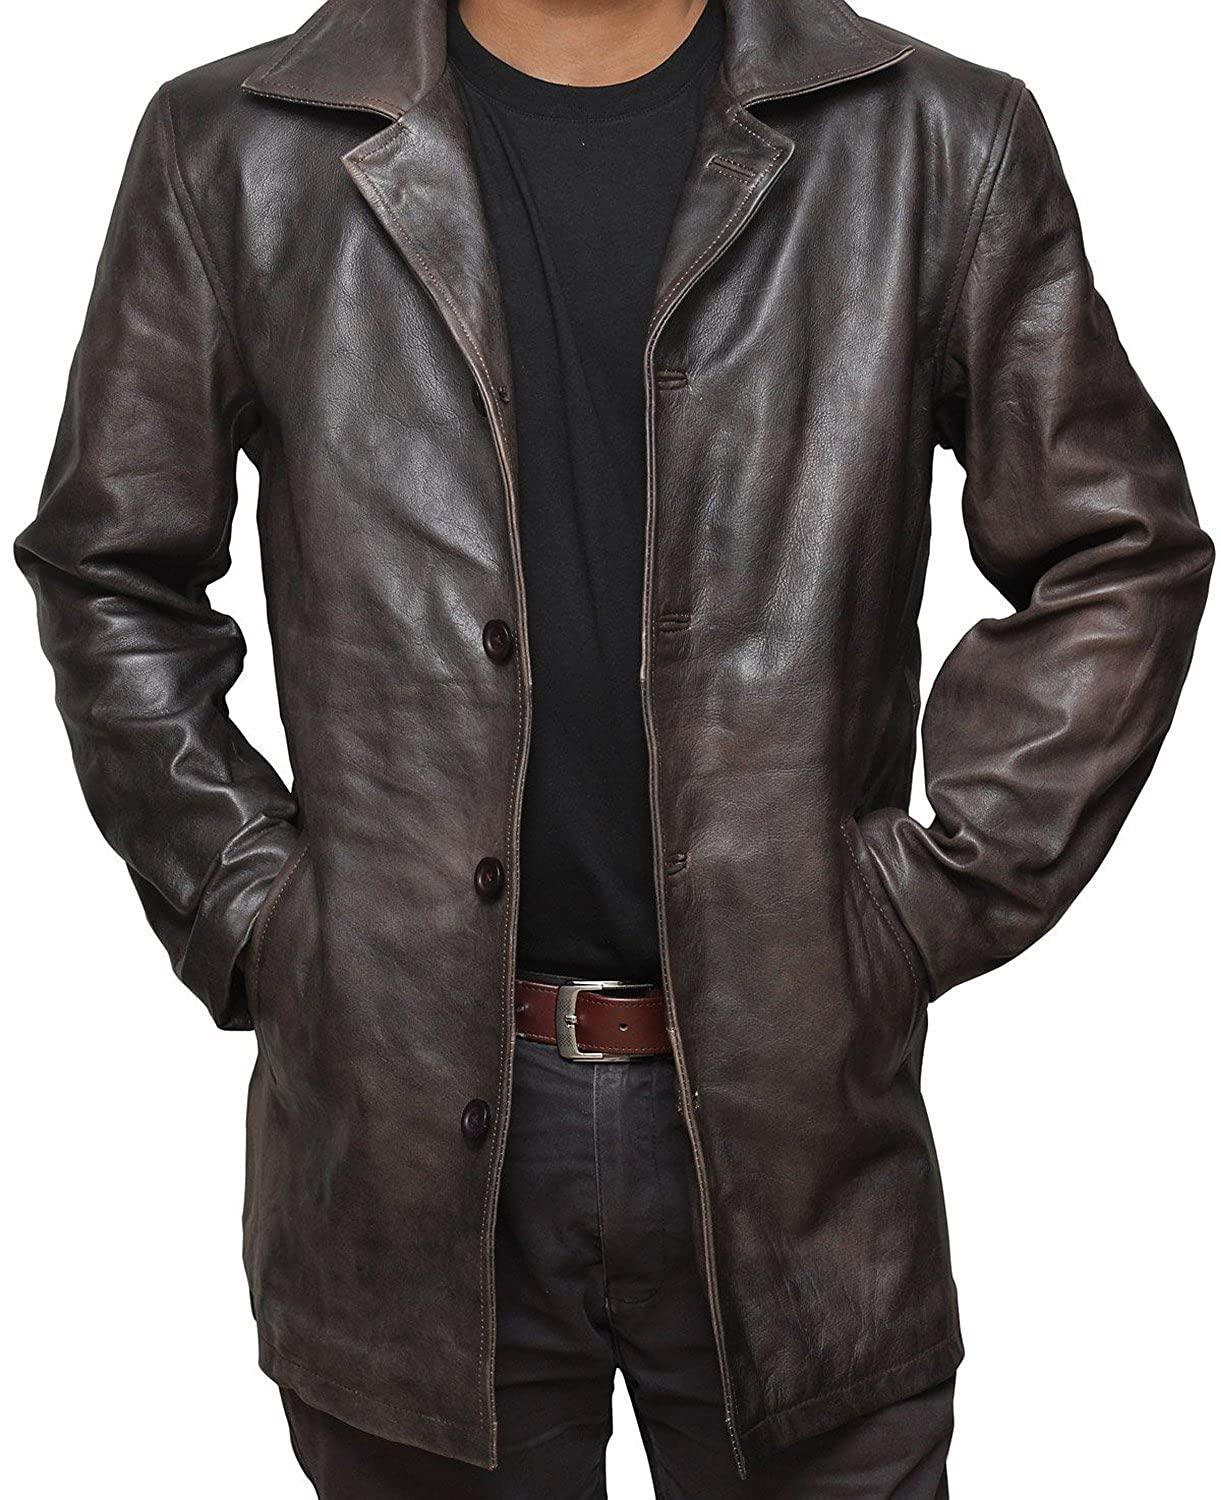 Brown Leather Jacket Men - Super Natural Distressed Leather Jackets for Men